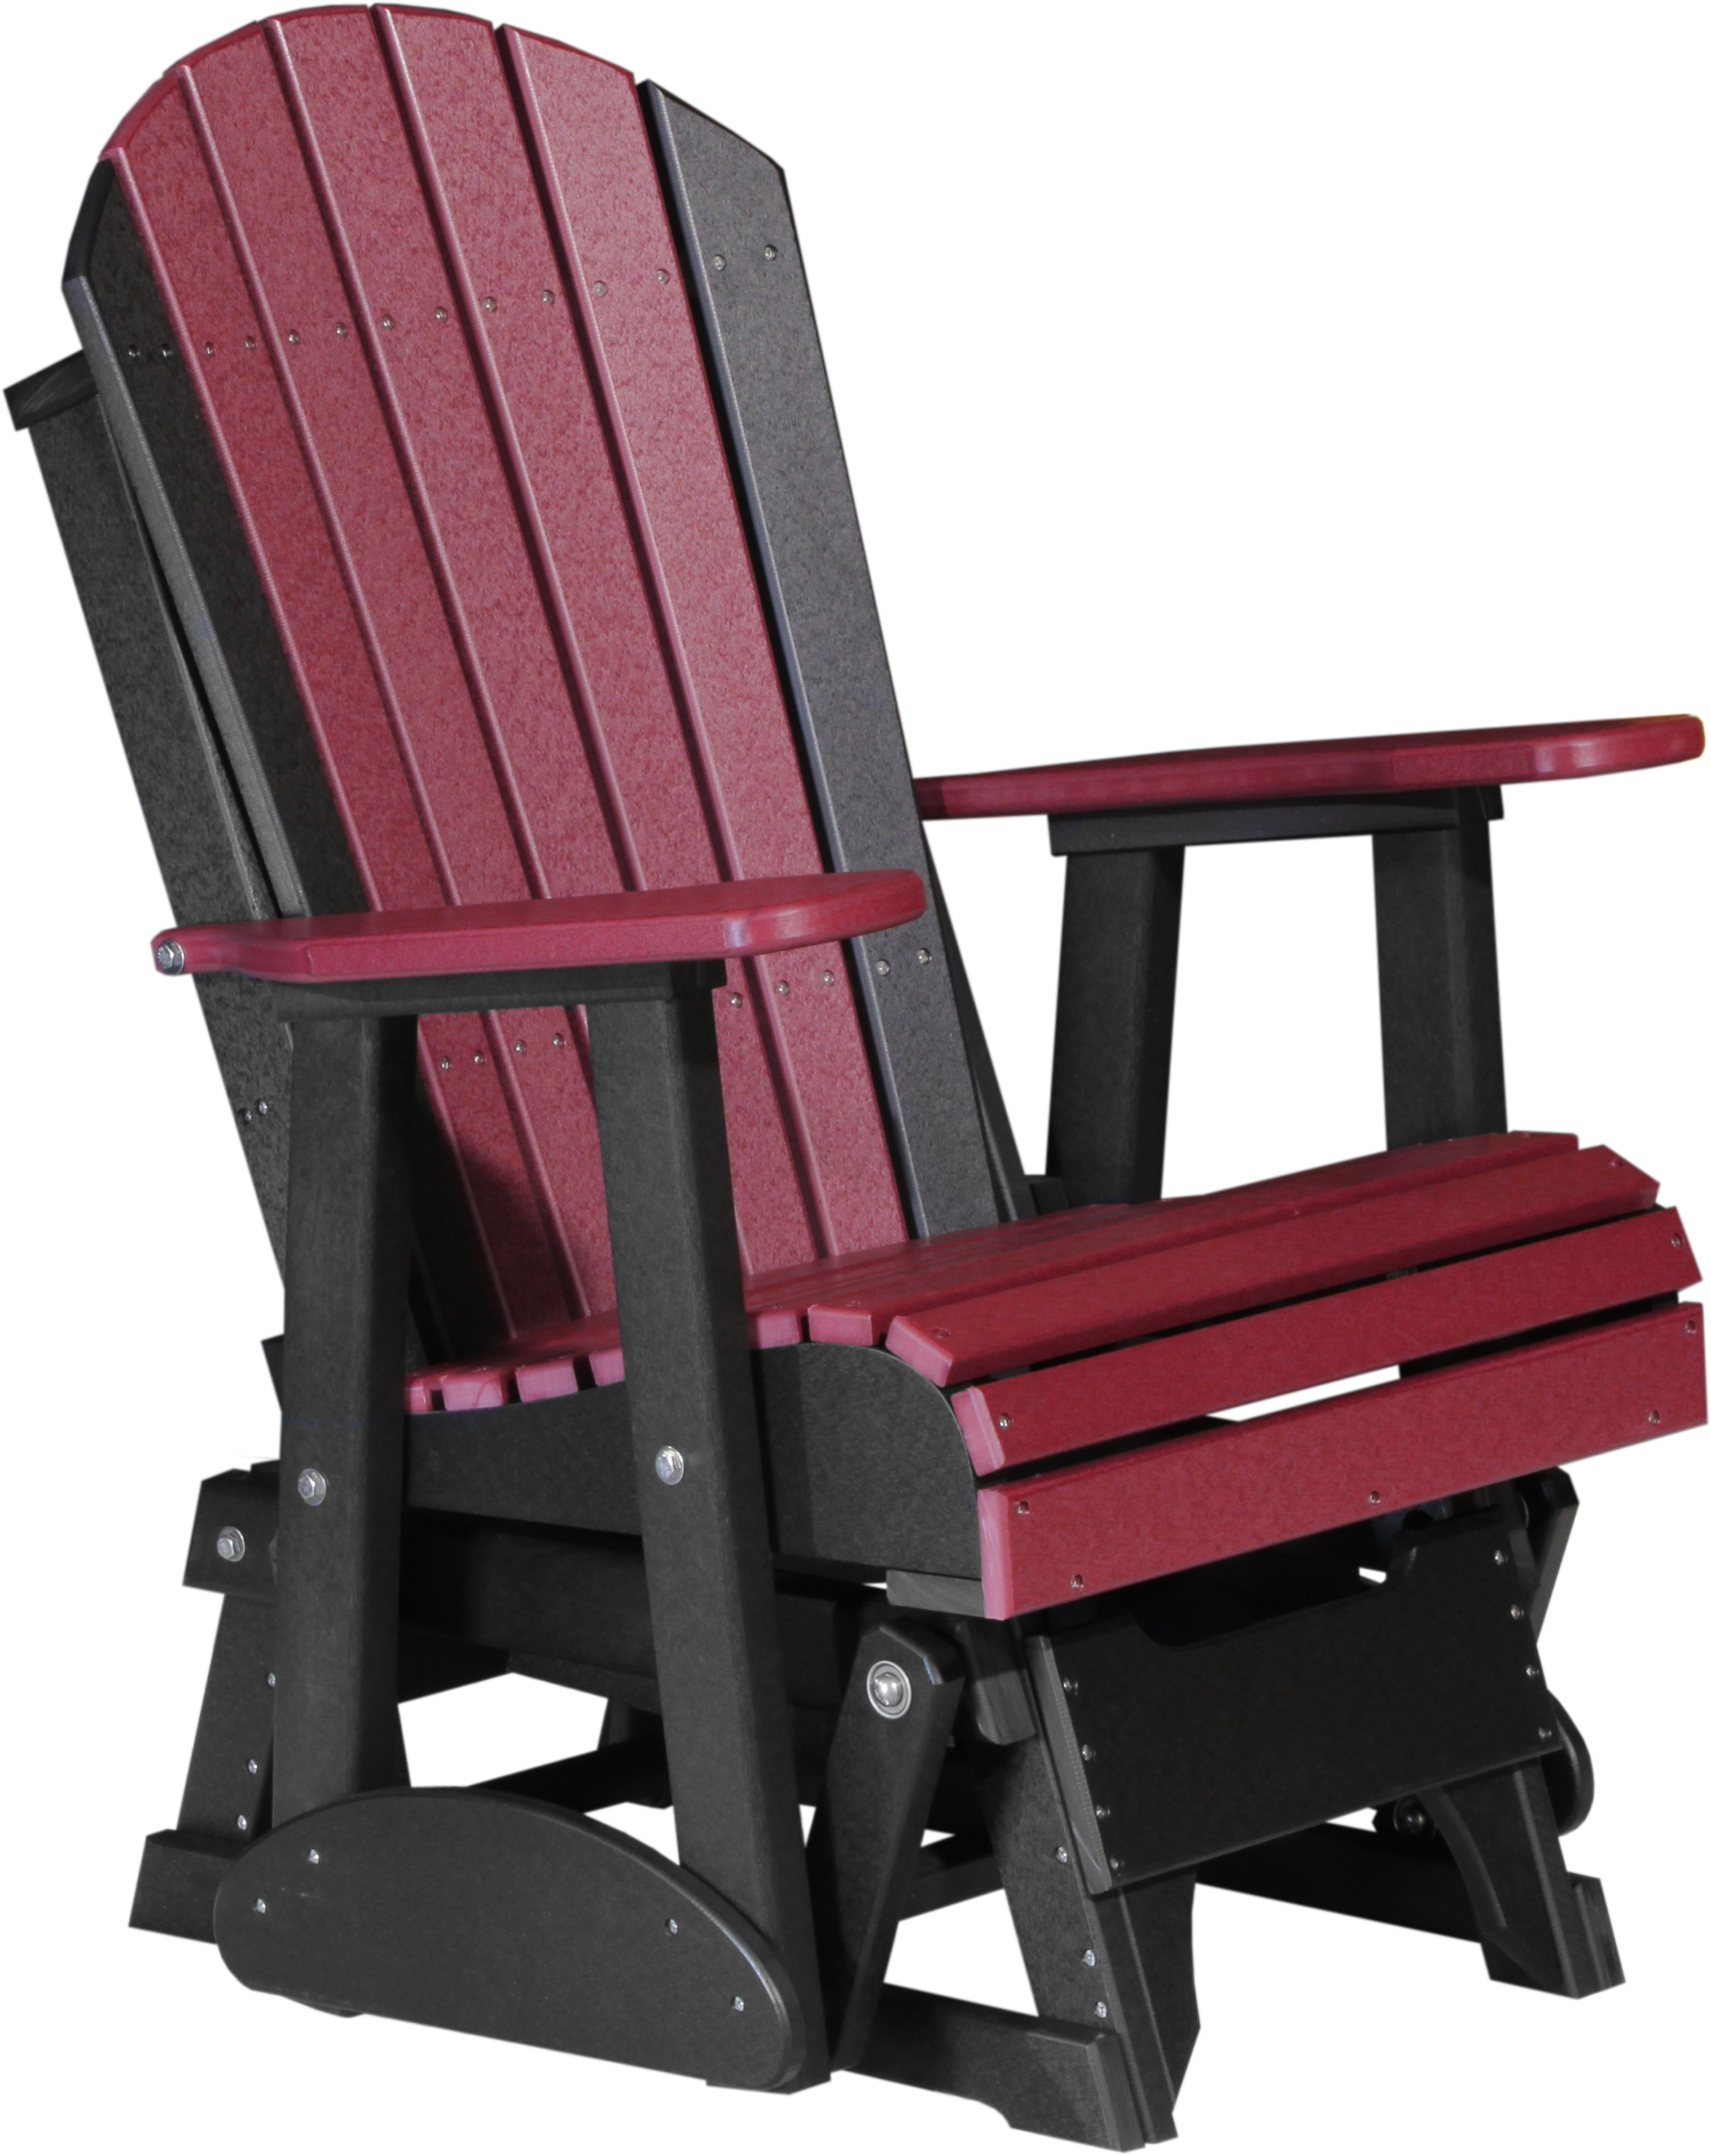 Trendy Patio Rocking Chairs And Gliders Inside Outdoor Furniture (View 6 of 20)